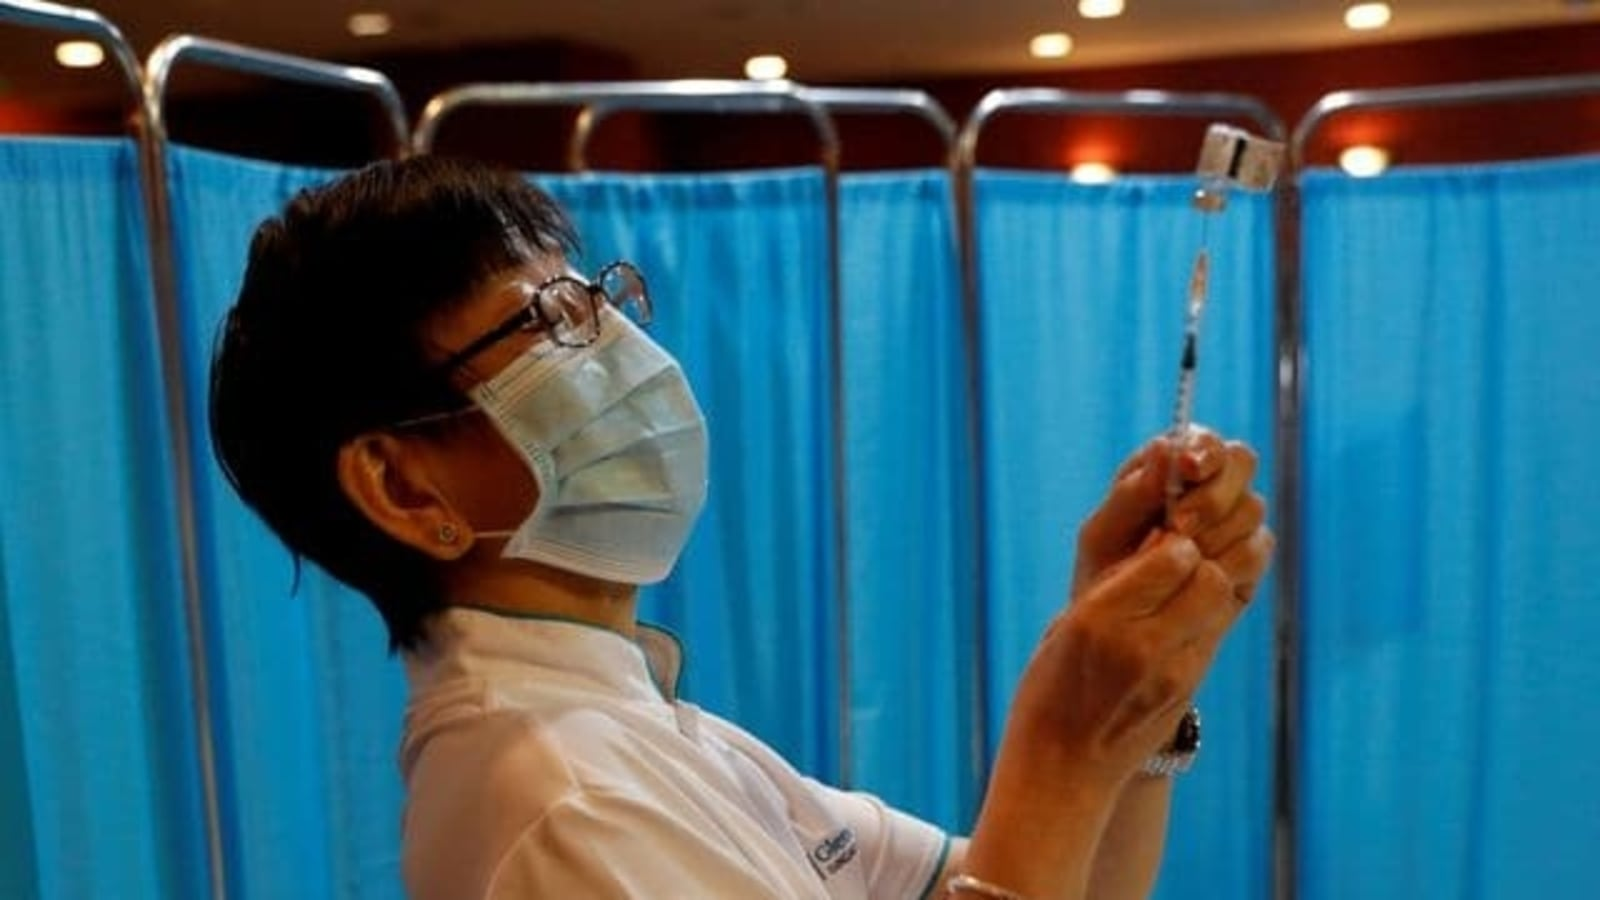 Covid-19: Singapore PM assures senior residents of vaccine security, urges them to get inoculated